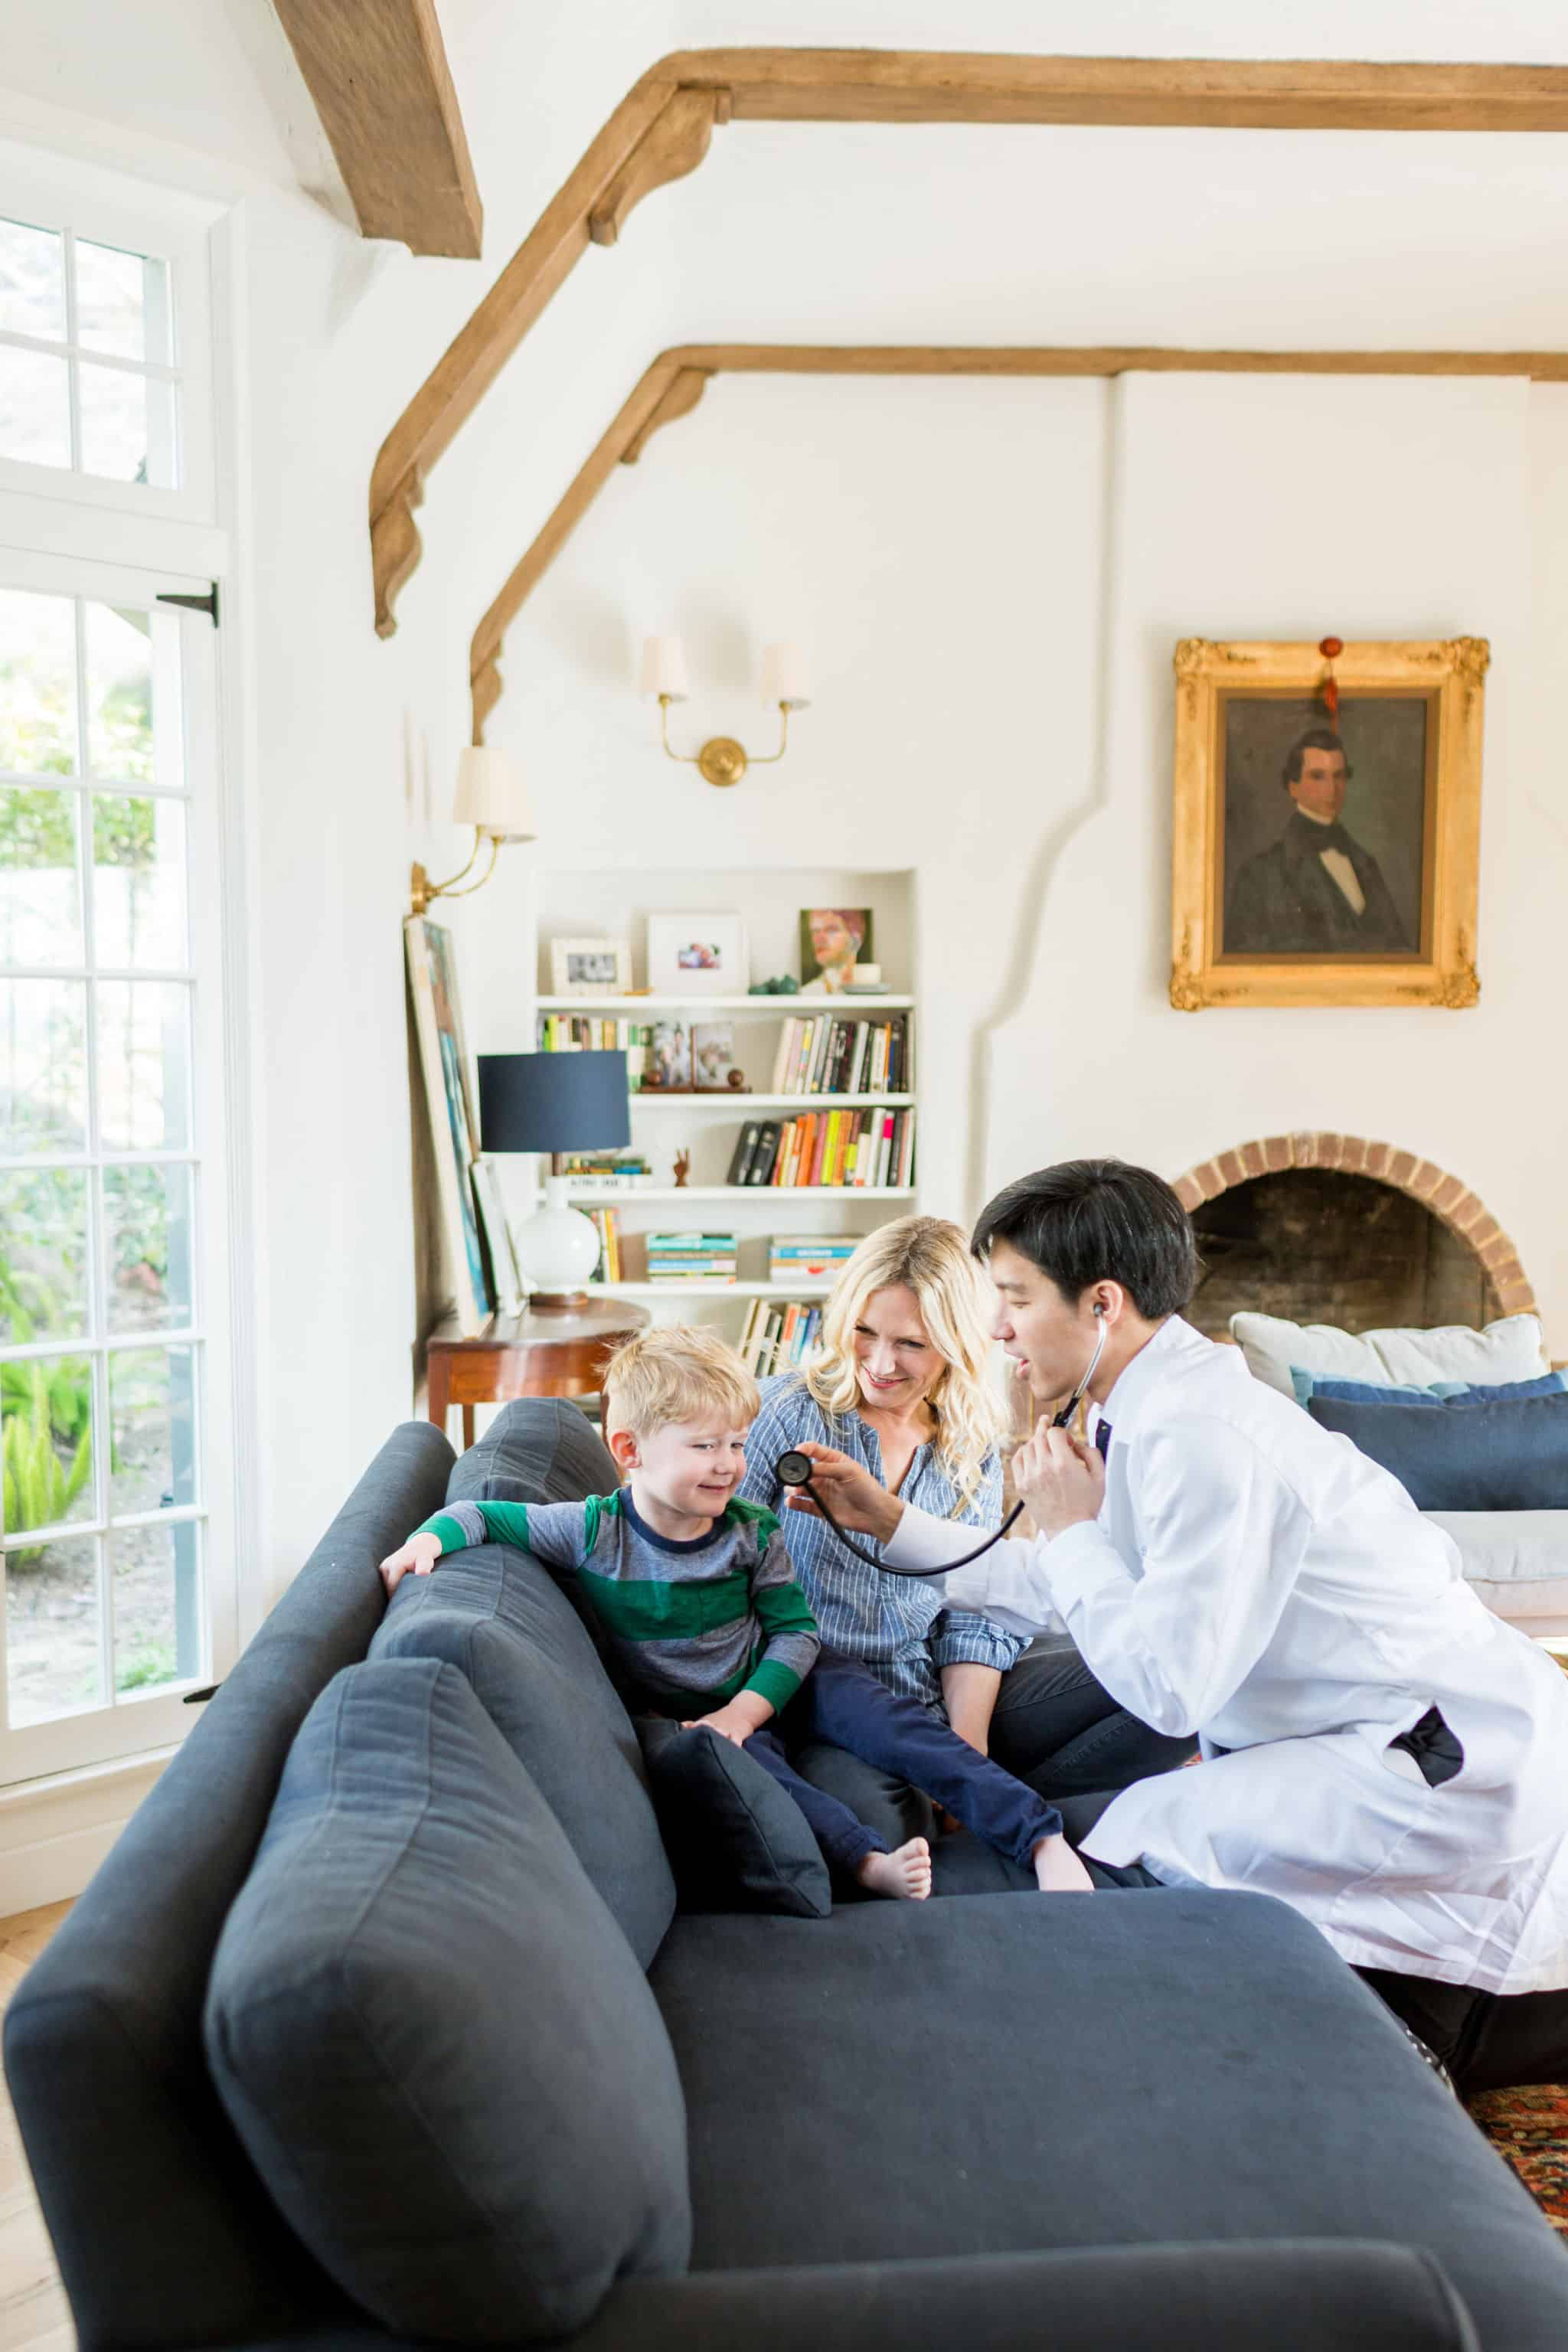 Emily Henderson_Home_Family_In Home_Medicine_Checkup_Doctor_Heal_46